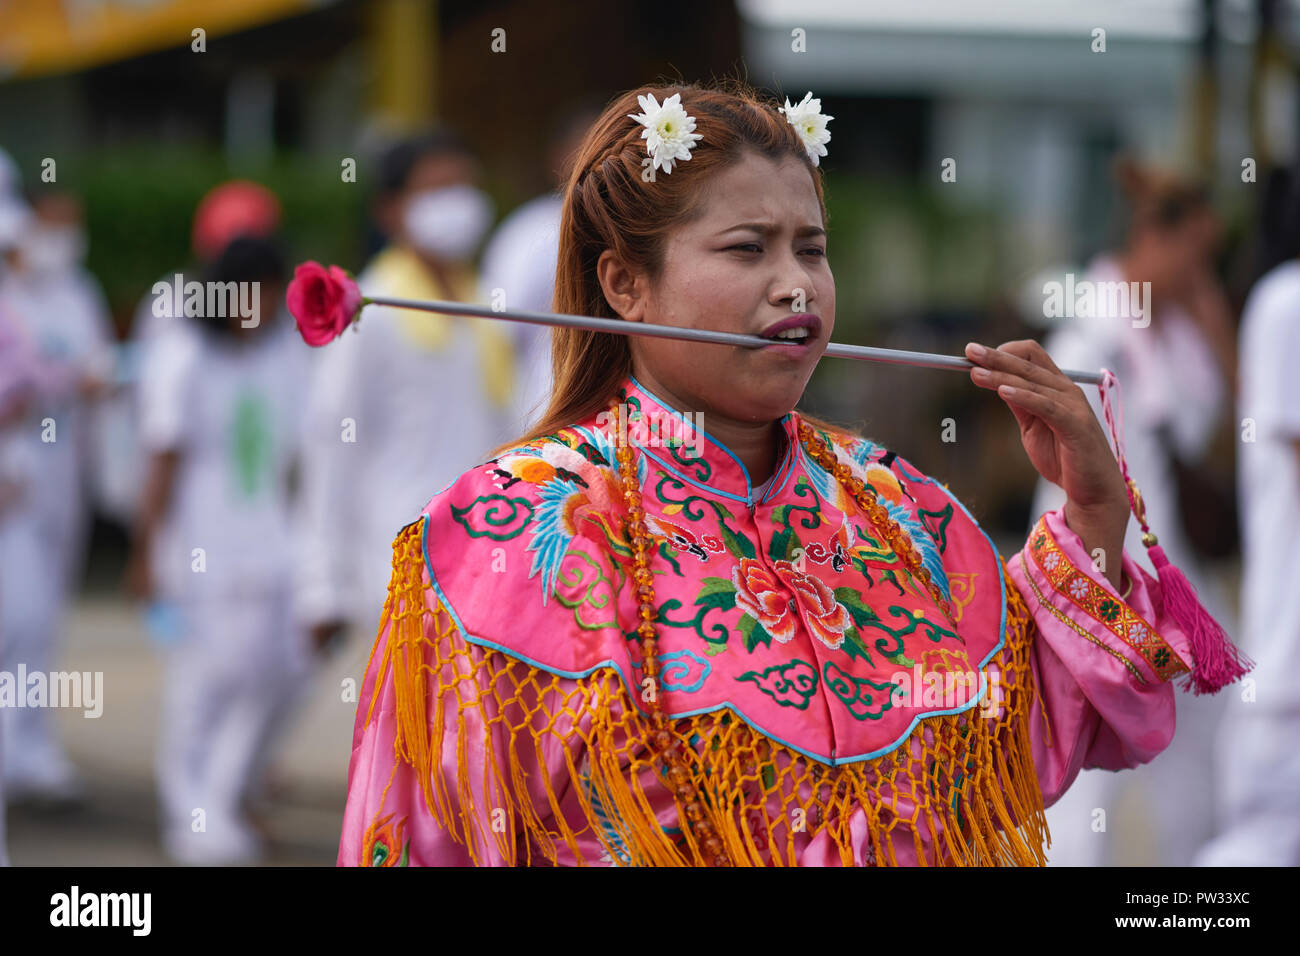 During the Vegetarian Festival in Phuket, a woman in traditional Chinese dress takes on the role as spirit medium - Stock Image